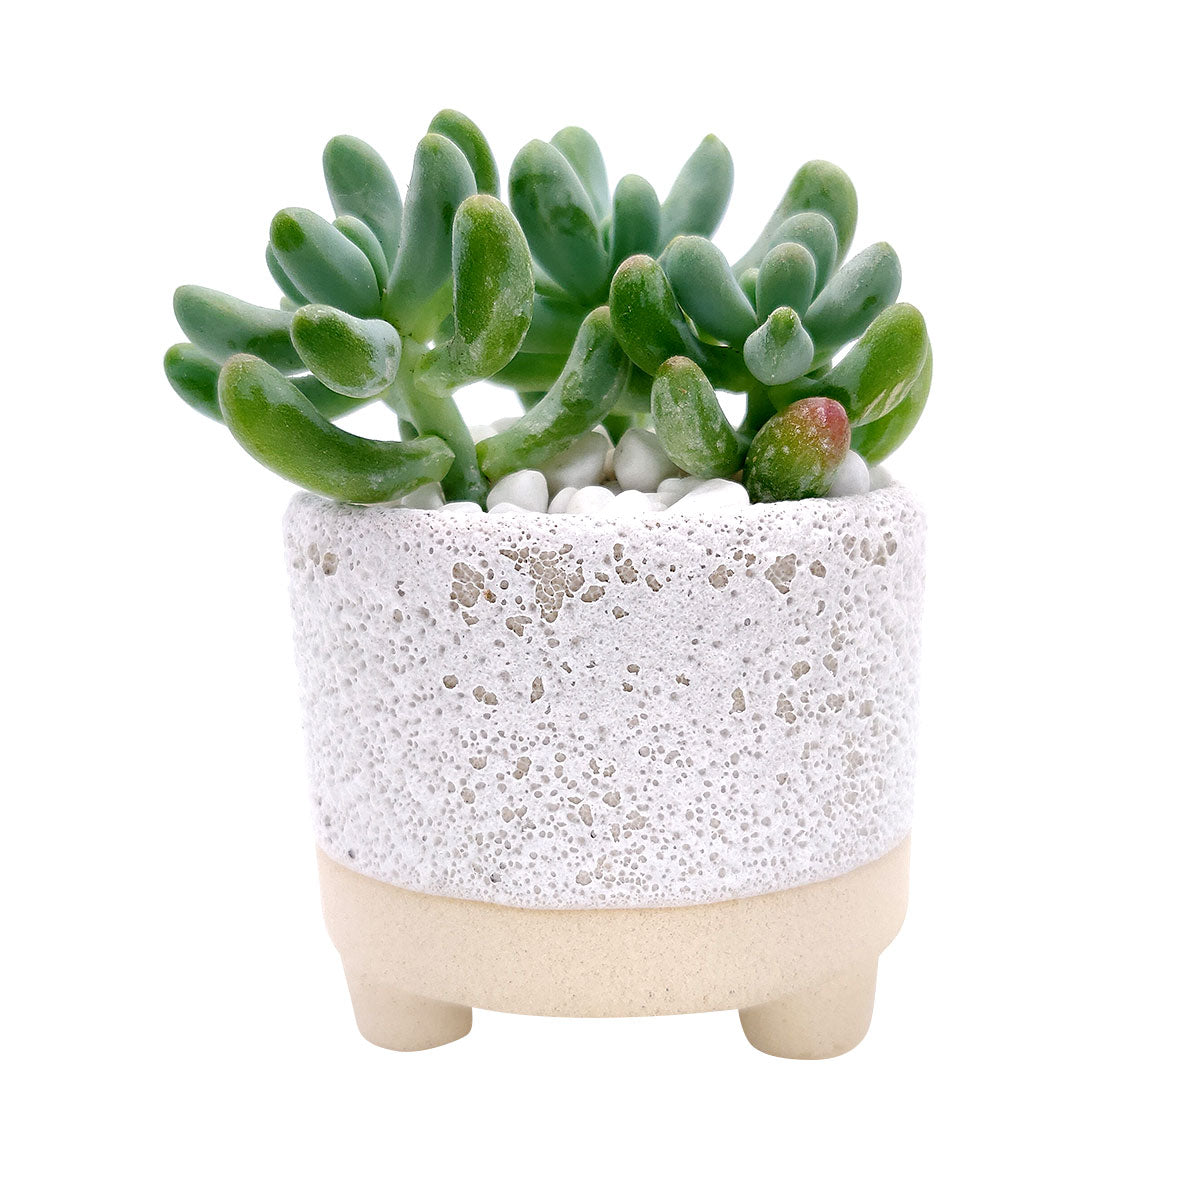 2 inch Bubbled Ceramic Footed Pot for sale, Mini pot for succulent, Succulent pot decor ideas, 2 inch size pot for succulents, Flower pot for sale, ceramic pots for planting